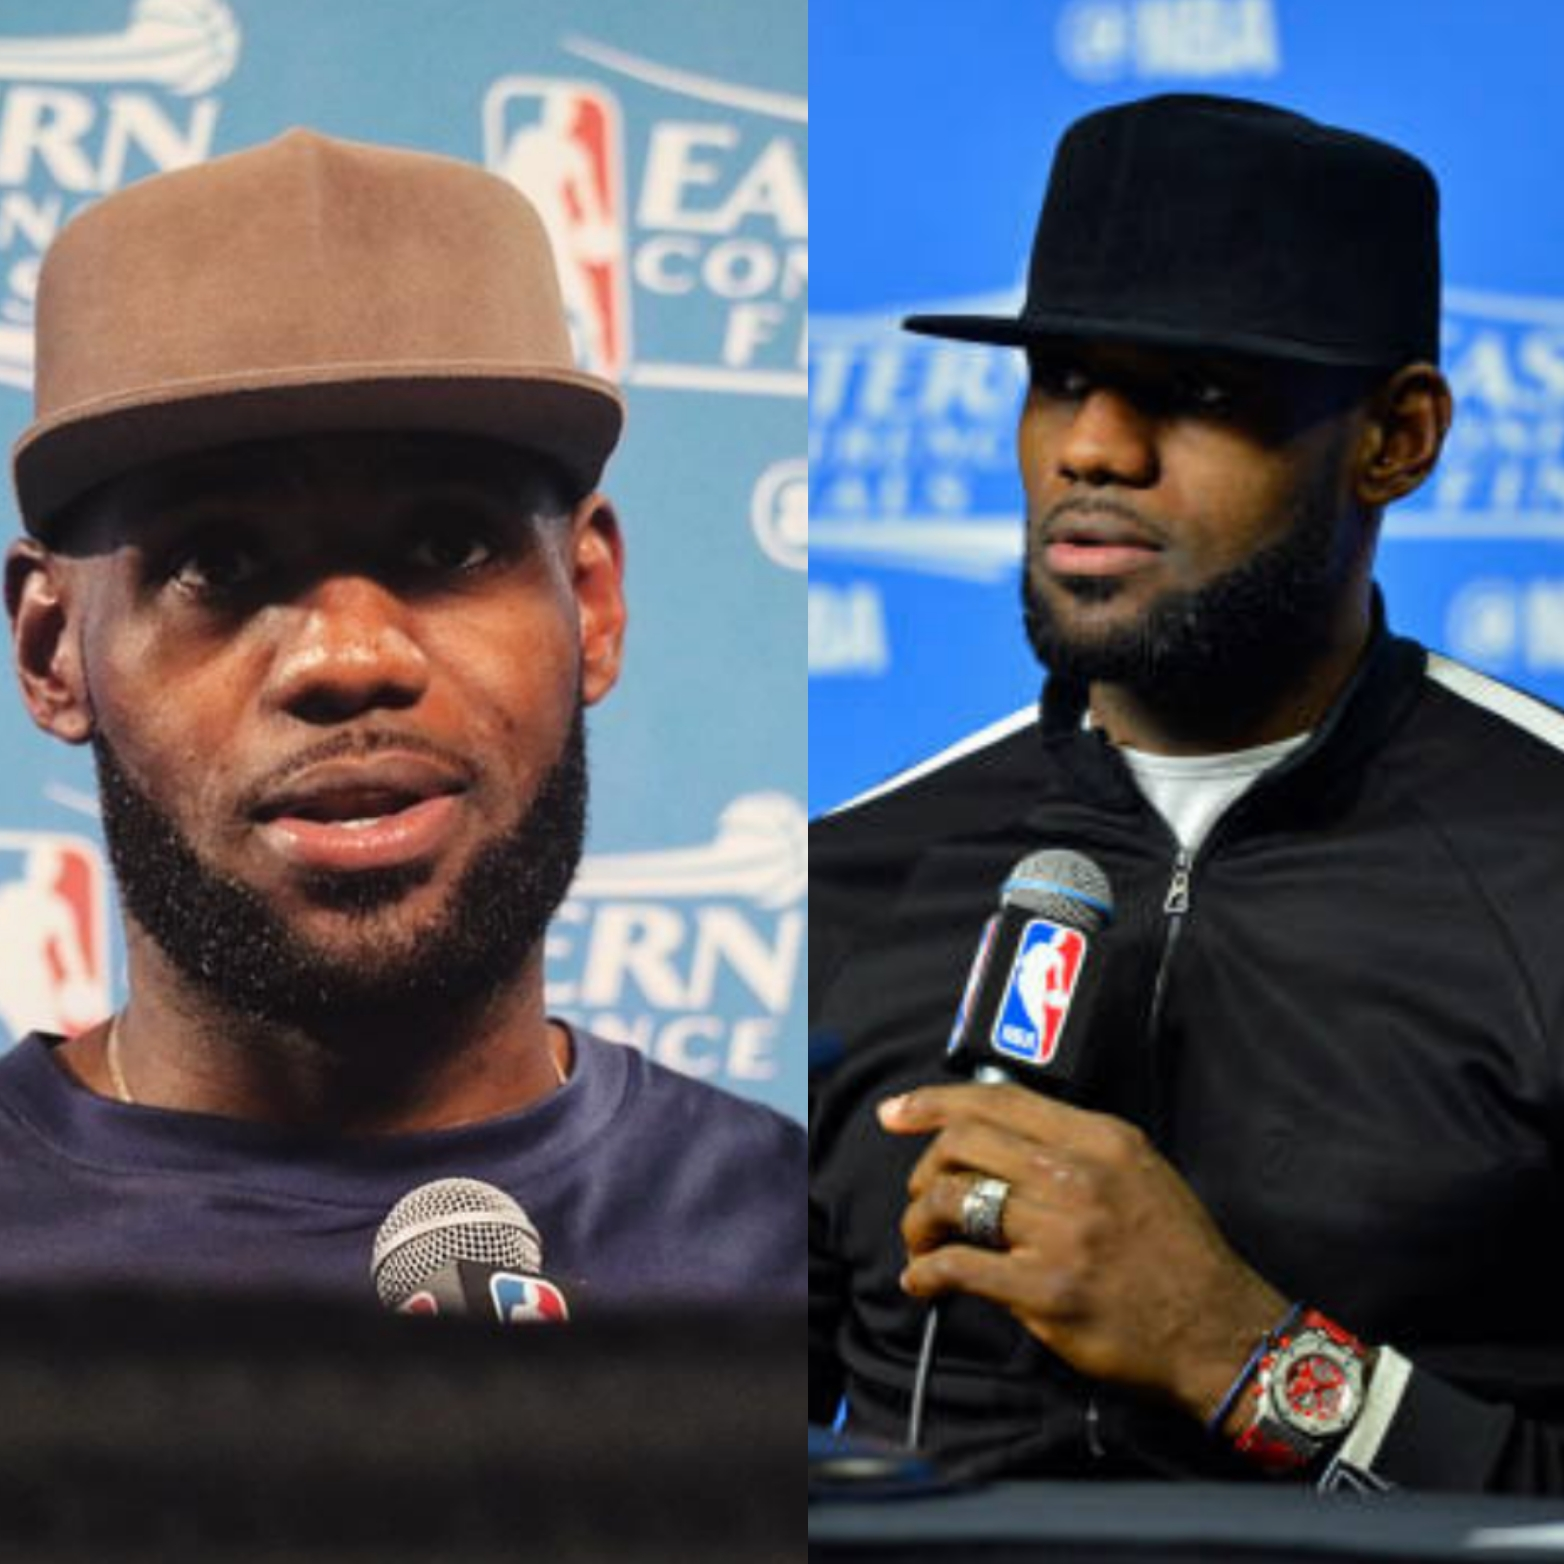 Lebron James' NBA Playoffs 2017 Hat Will Cost You $425